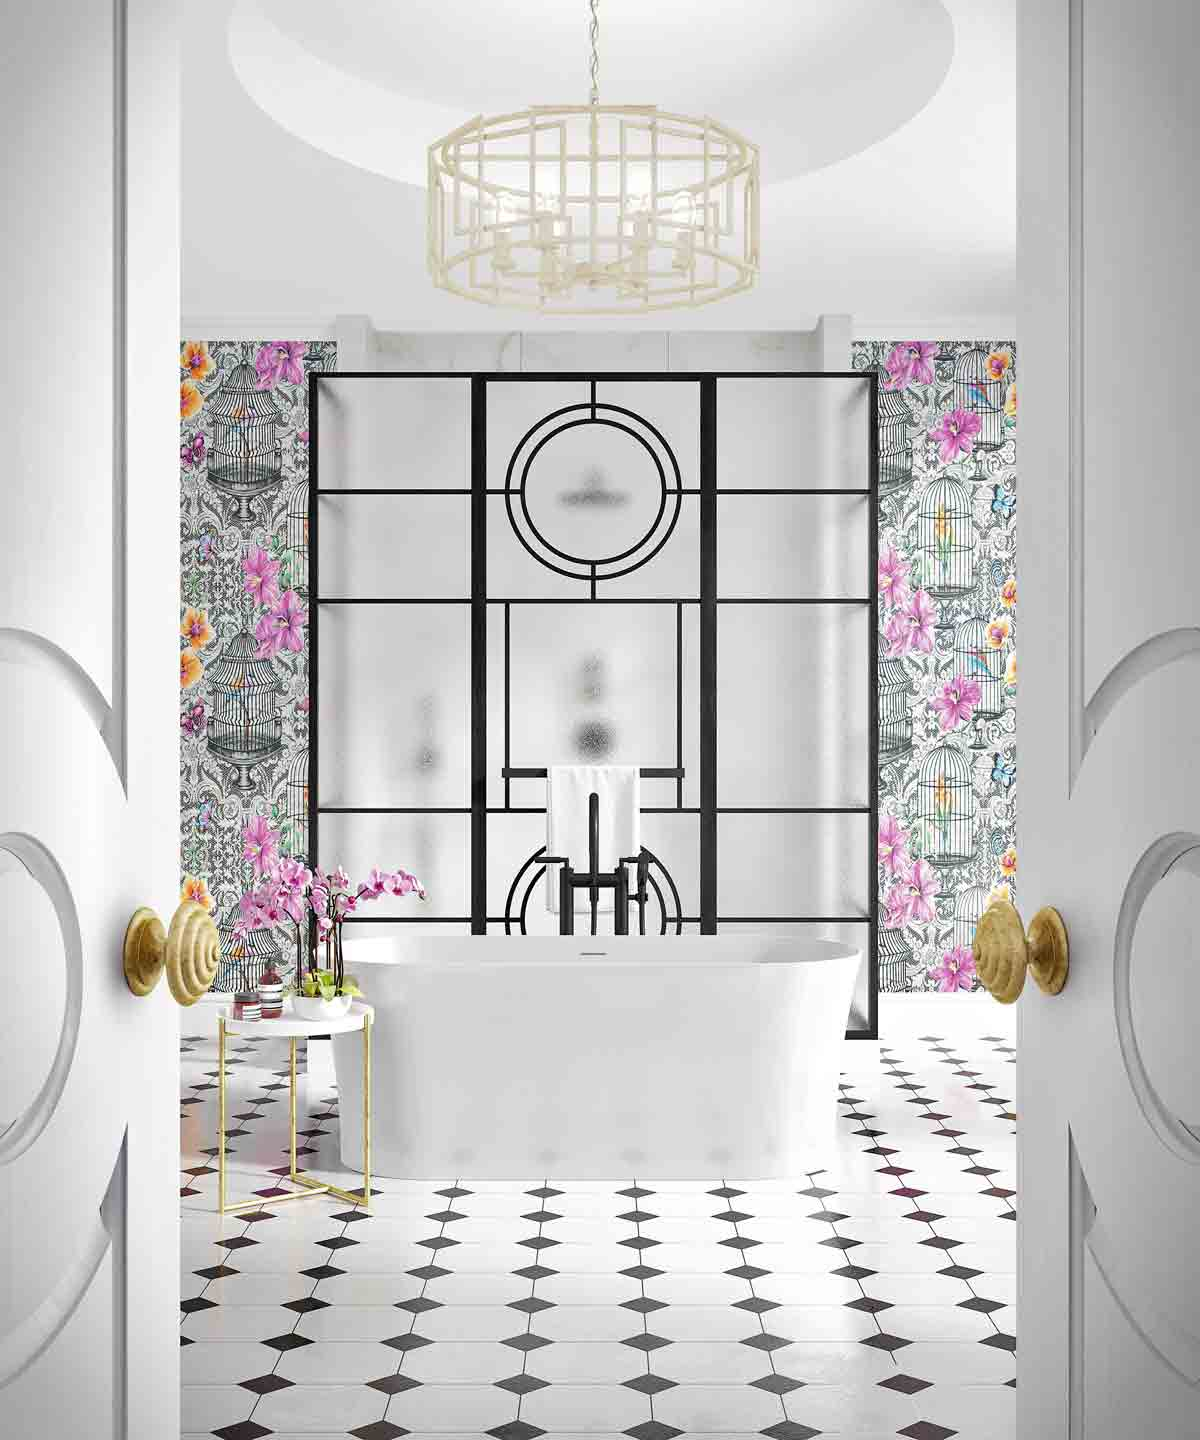 60 Elegant Small Master Bathroom Remodel Ideas 19 In 2019